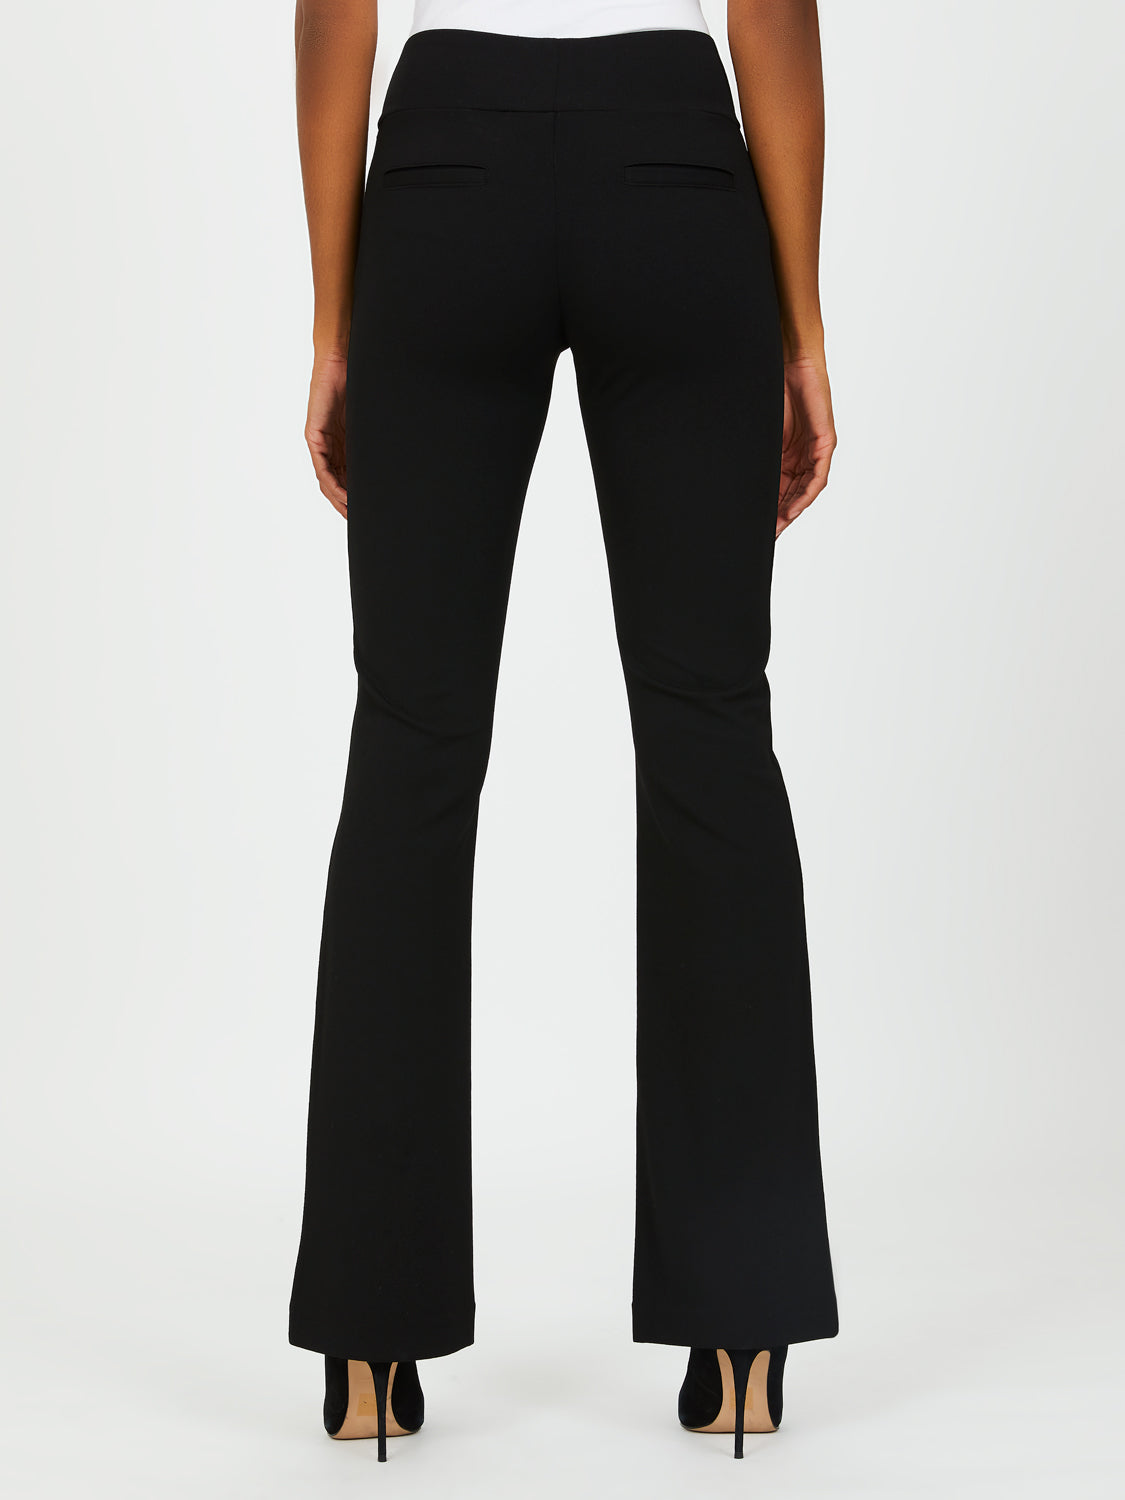 Flared Bottom Pant